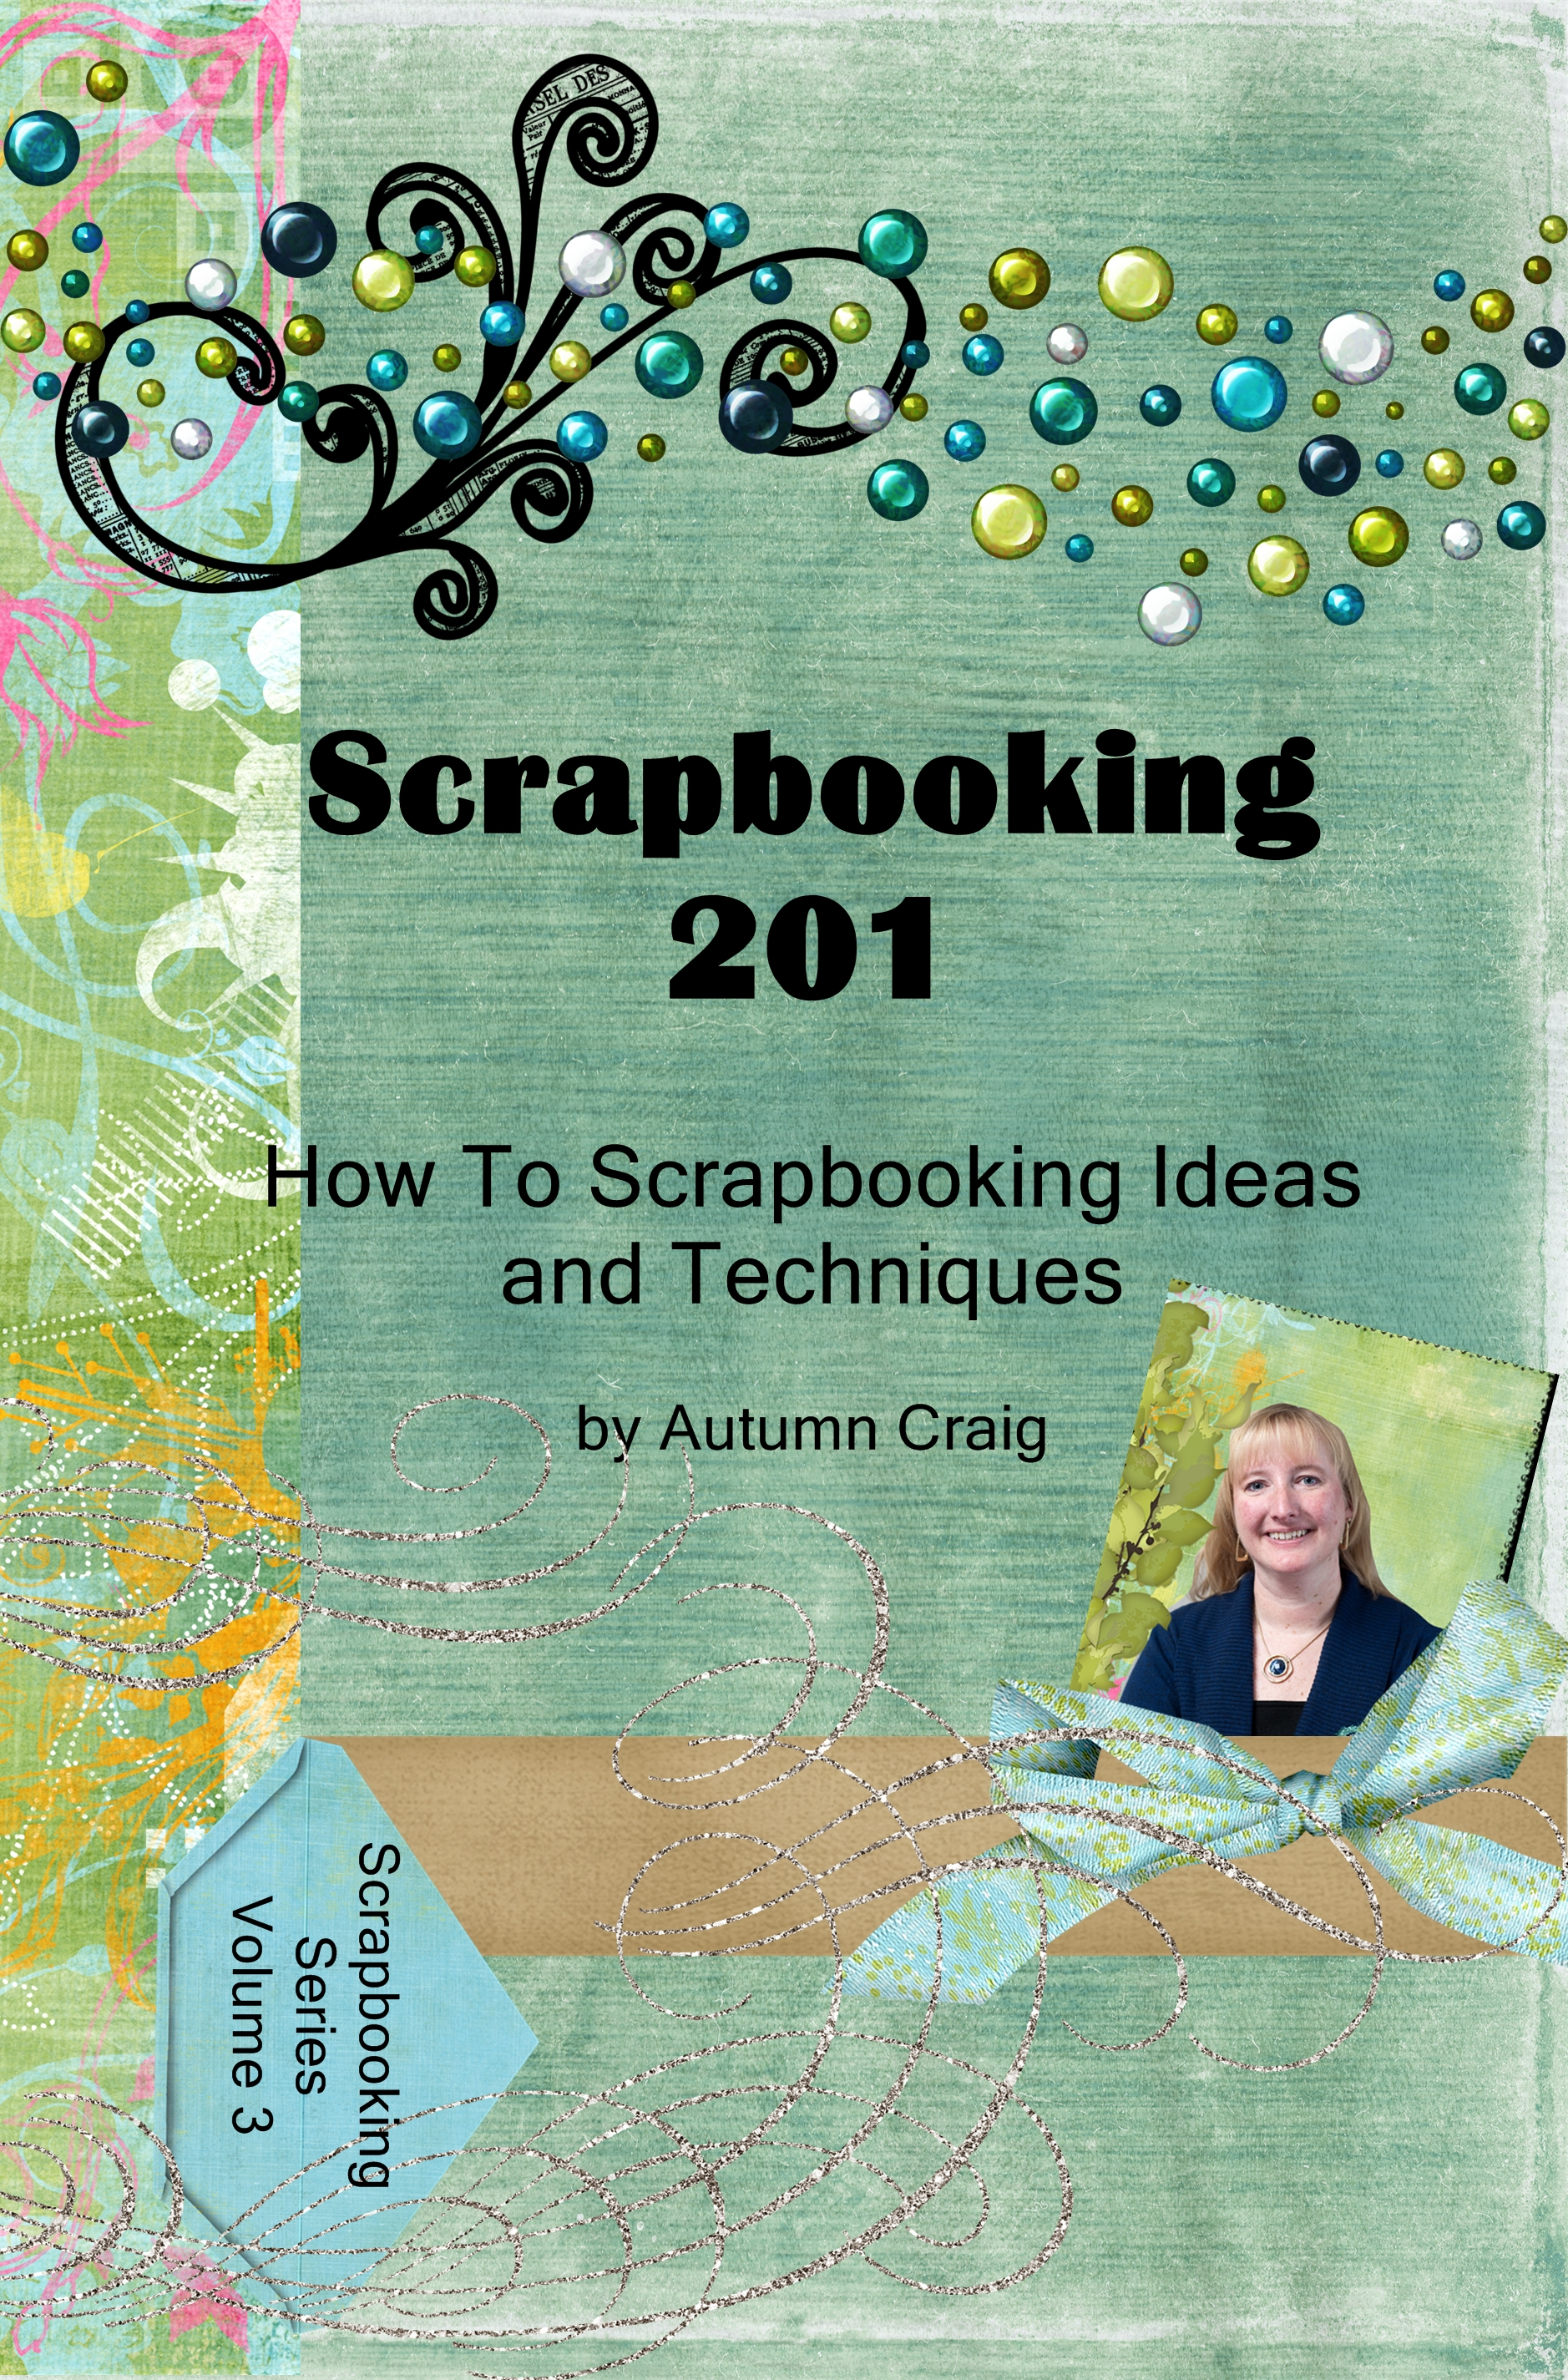 scrapbooking 201 cover